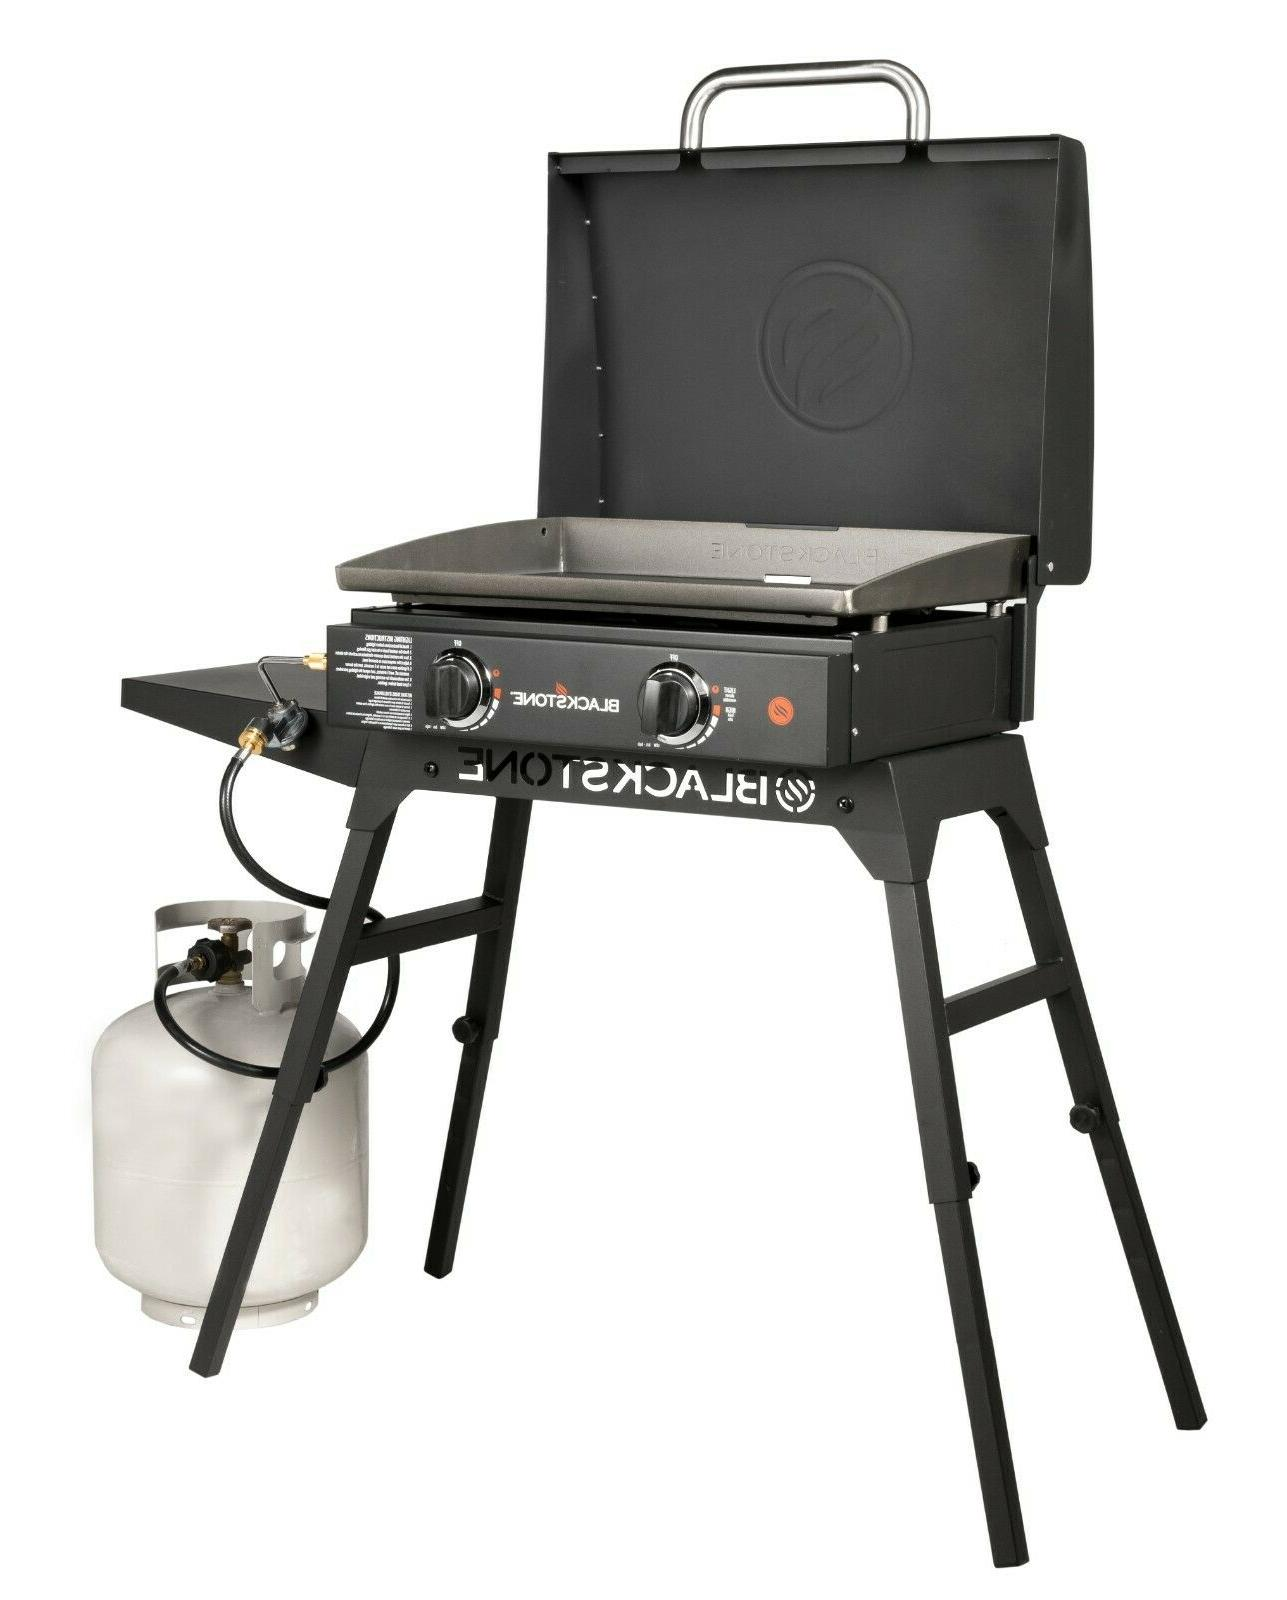 Blackstone Griddle Stand and Hood Outdoor Cooking BBQ